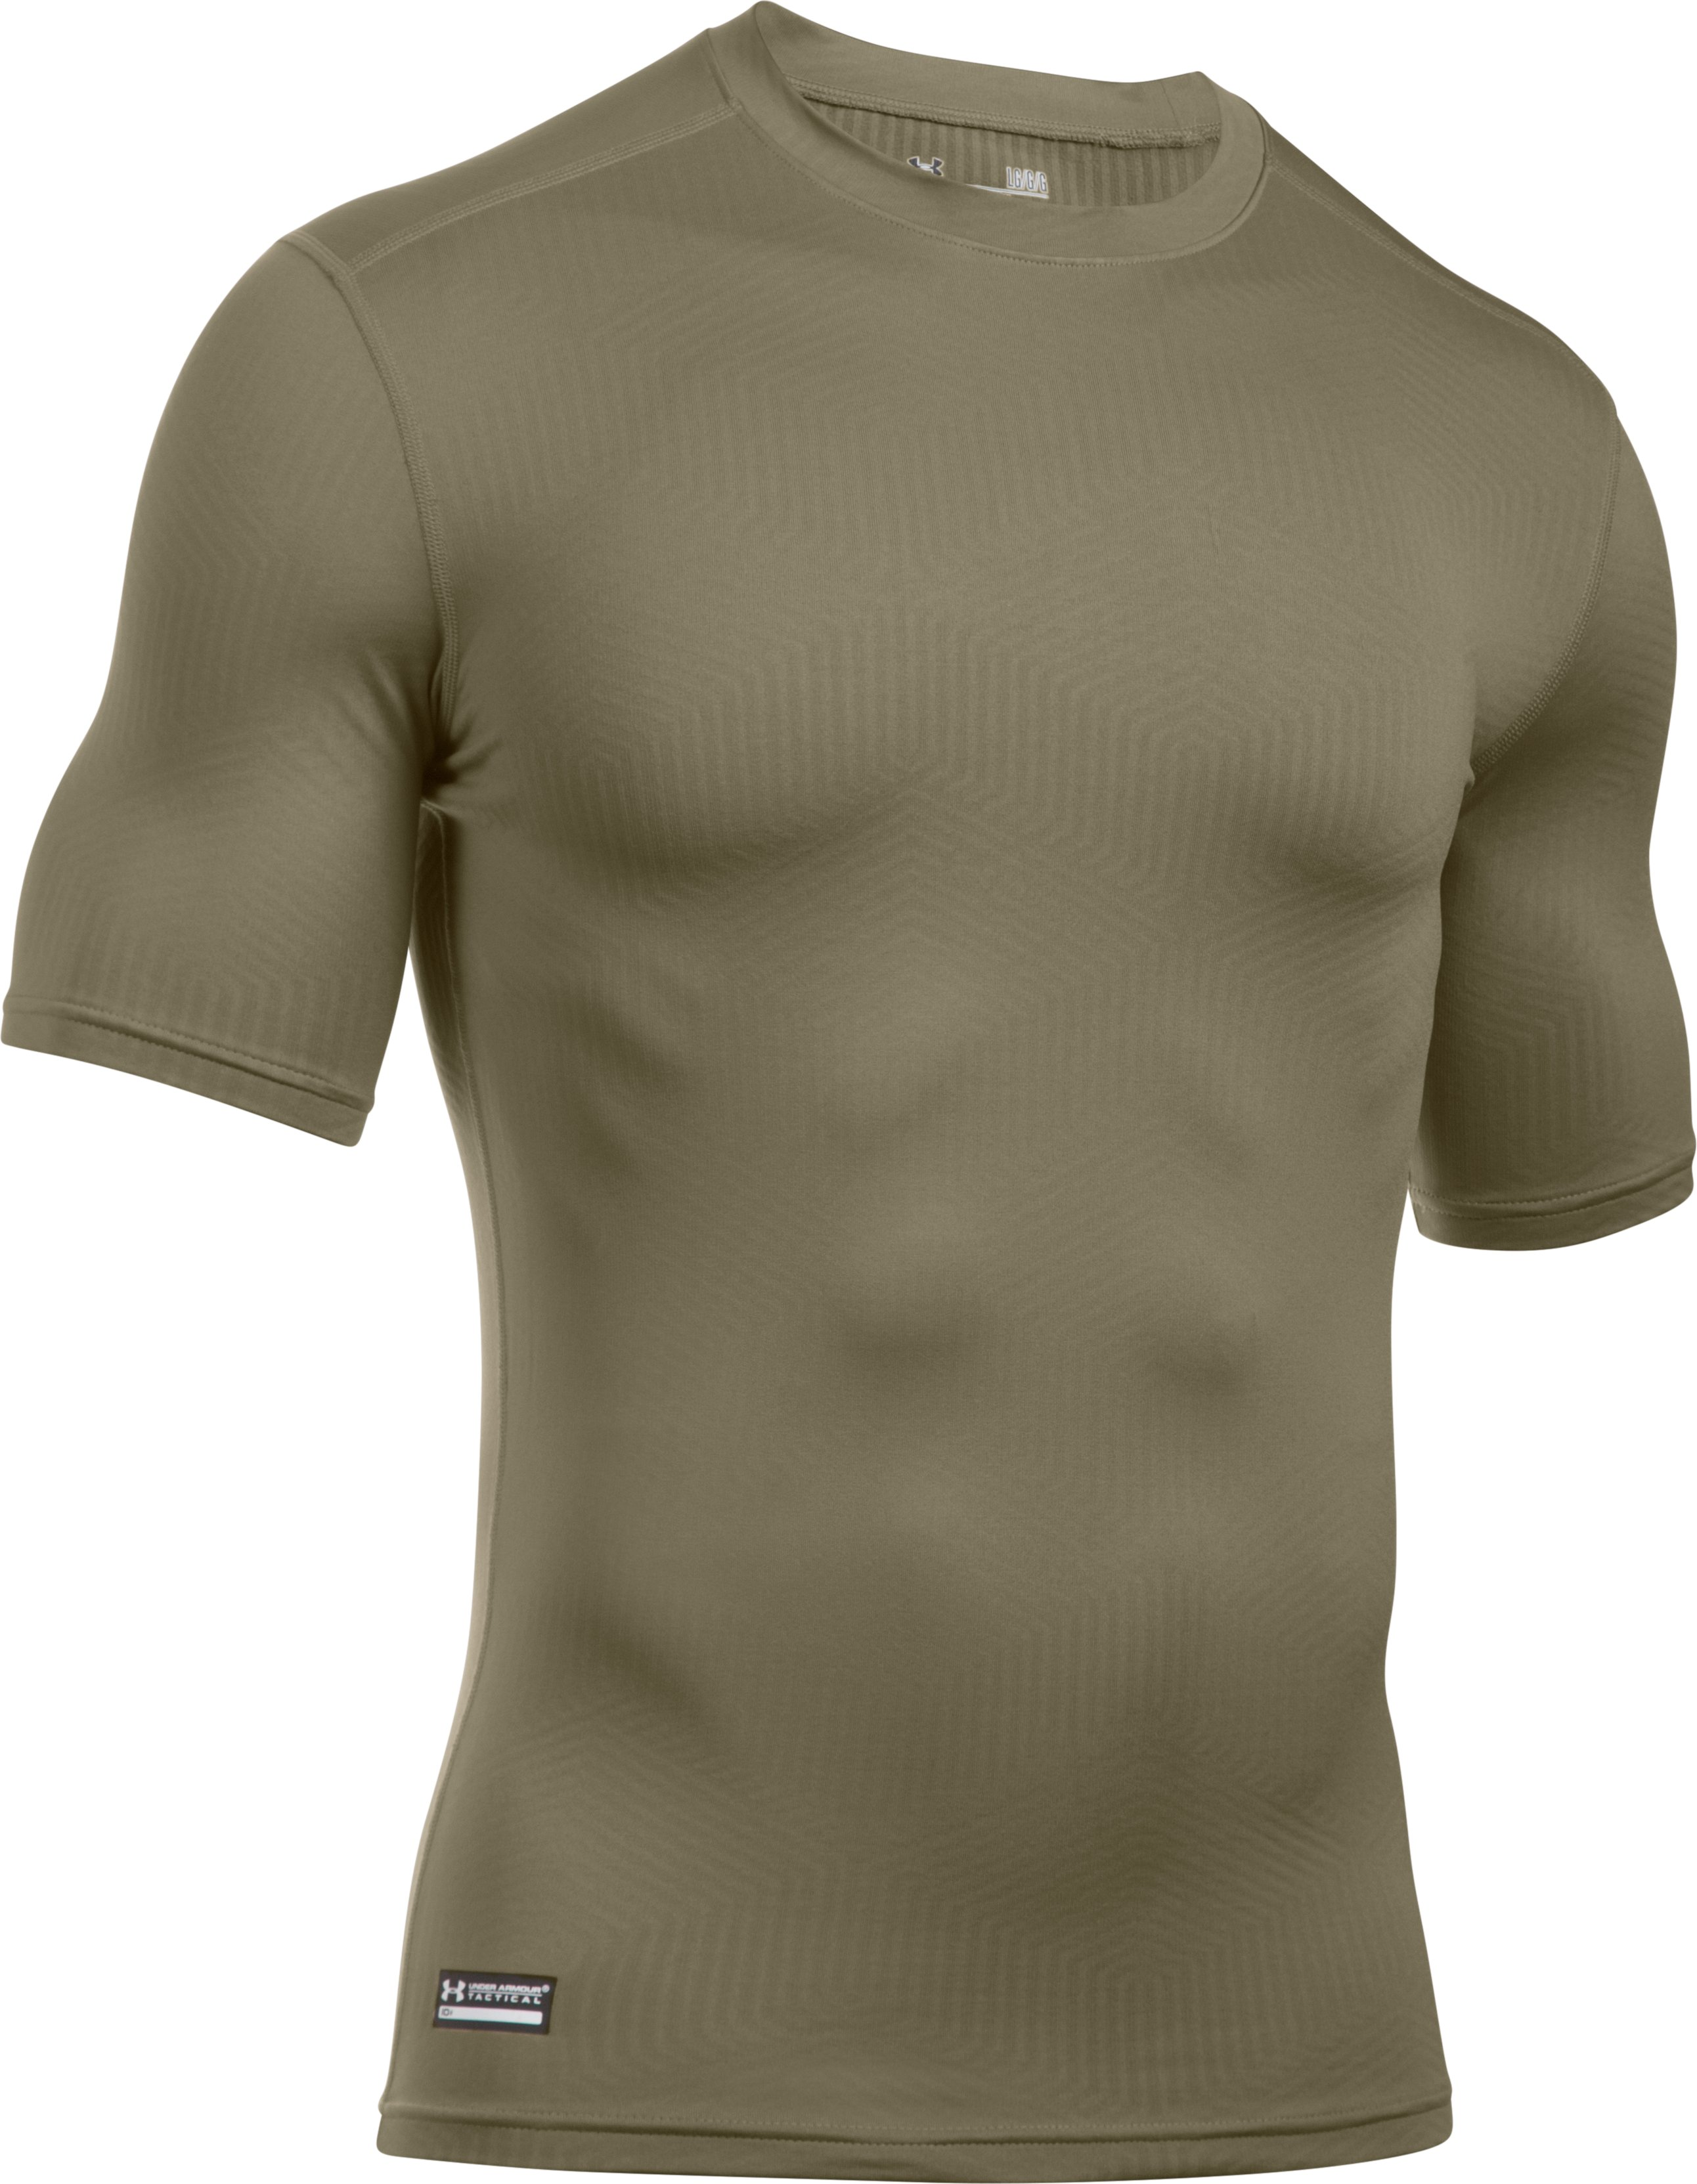 Men's ColdGear® Infrared Tactical Short Sleeve, FEDERAL TAN, undefined